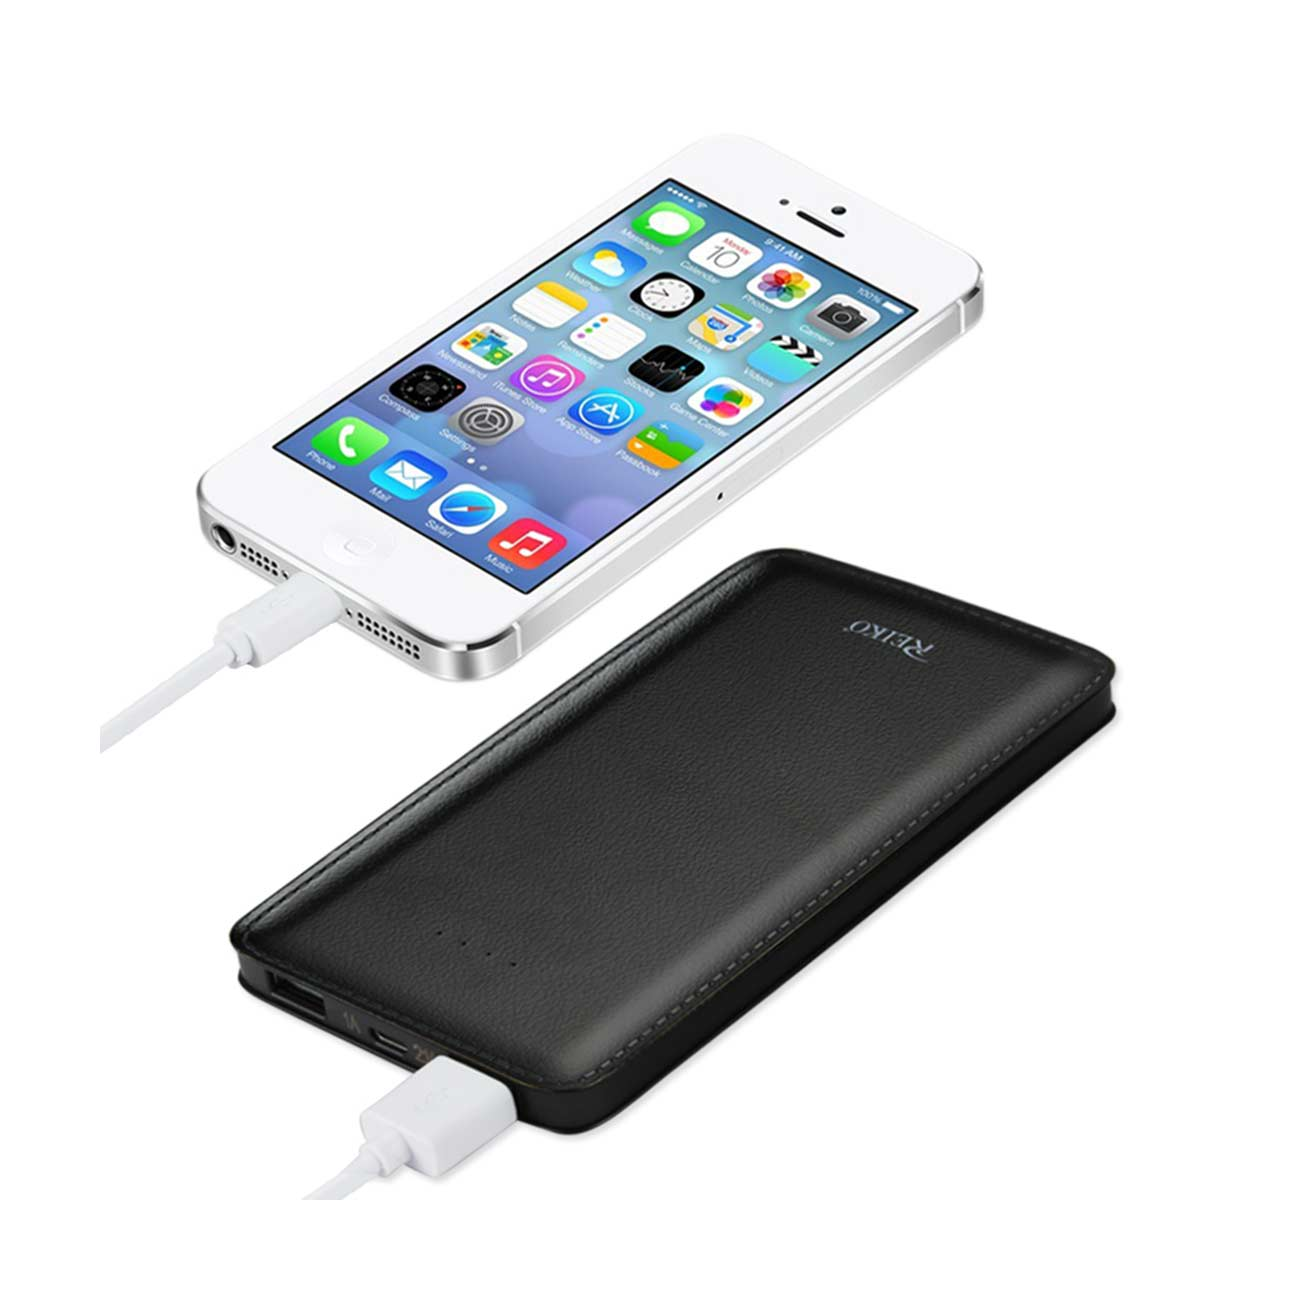 15000mAh Universal External Power Bank Portable Charger for Cell Phone and Samsung Tab LG GPAD Tablets US